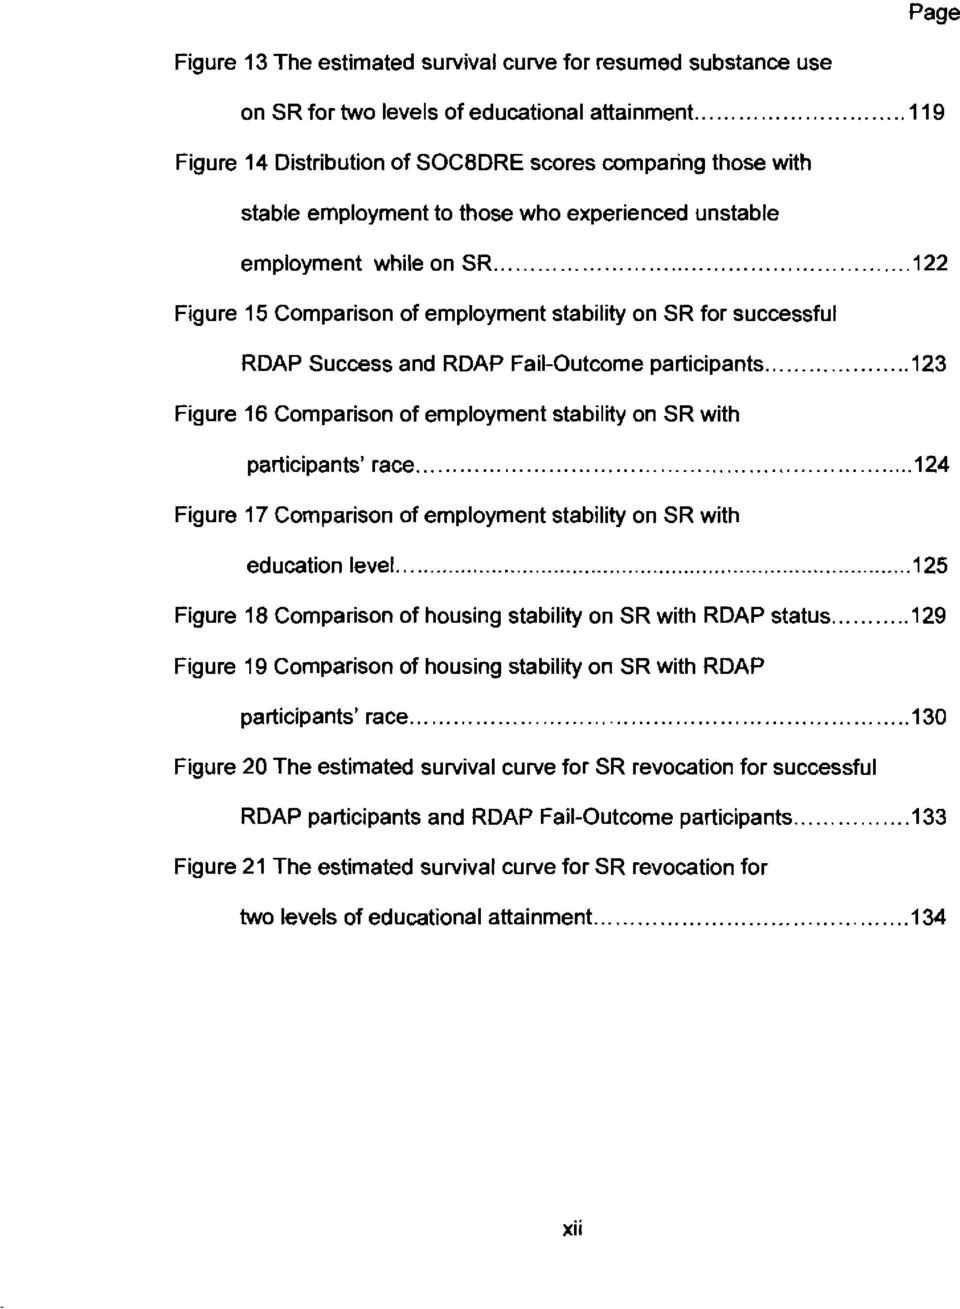 ....,122 Figure 15 Comparison of employment stability on SR for successful RDAP Success and RDAP Fail-Outcome participants... 123 Figure 16 Comparison of employment stability on SR with.